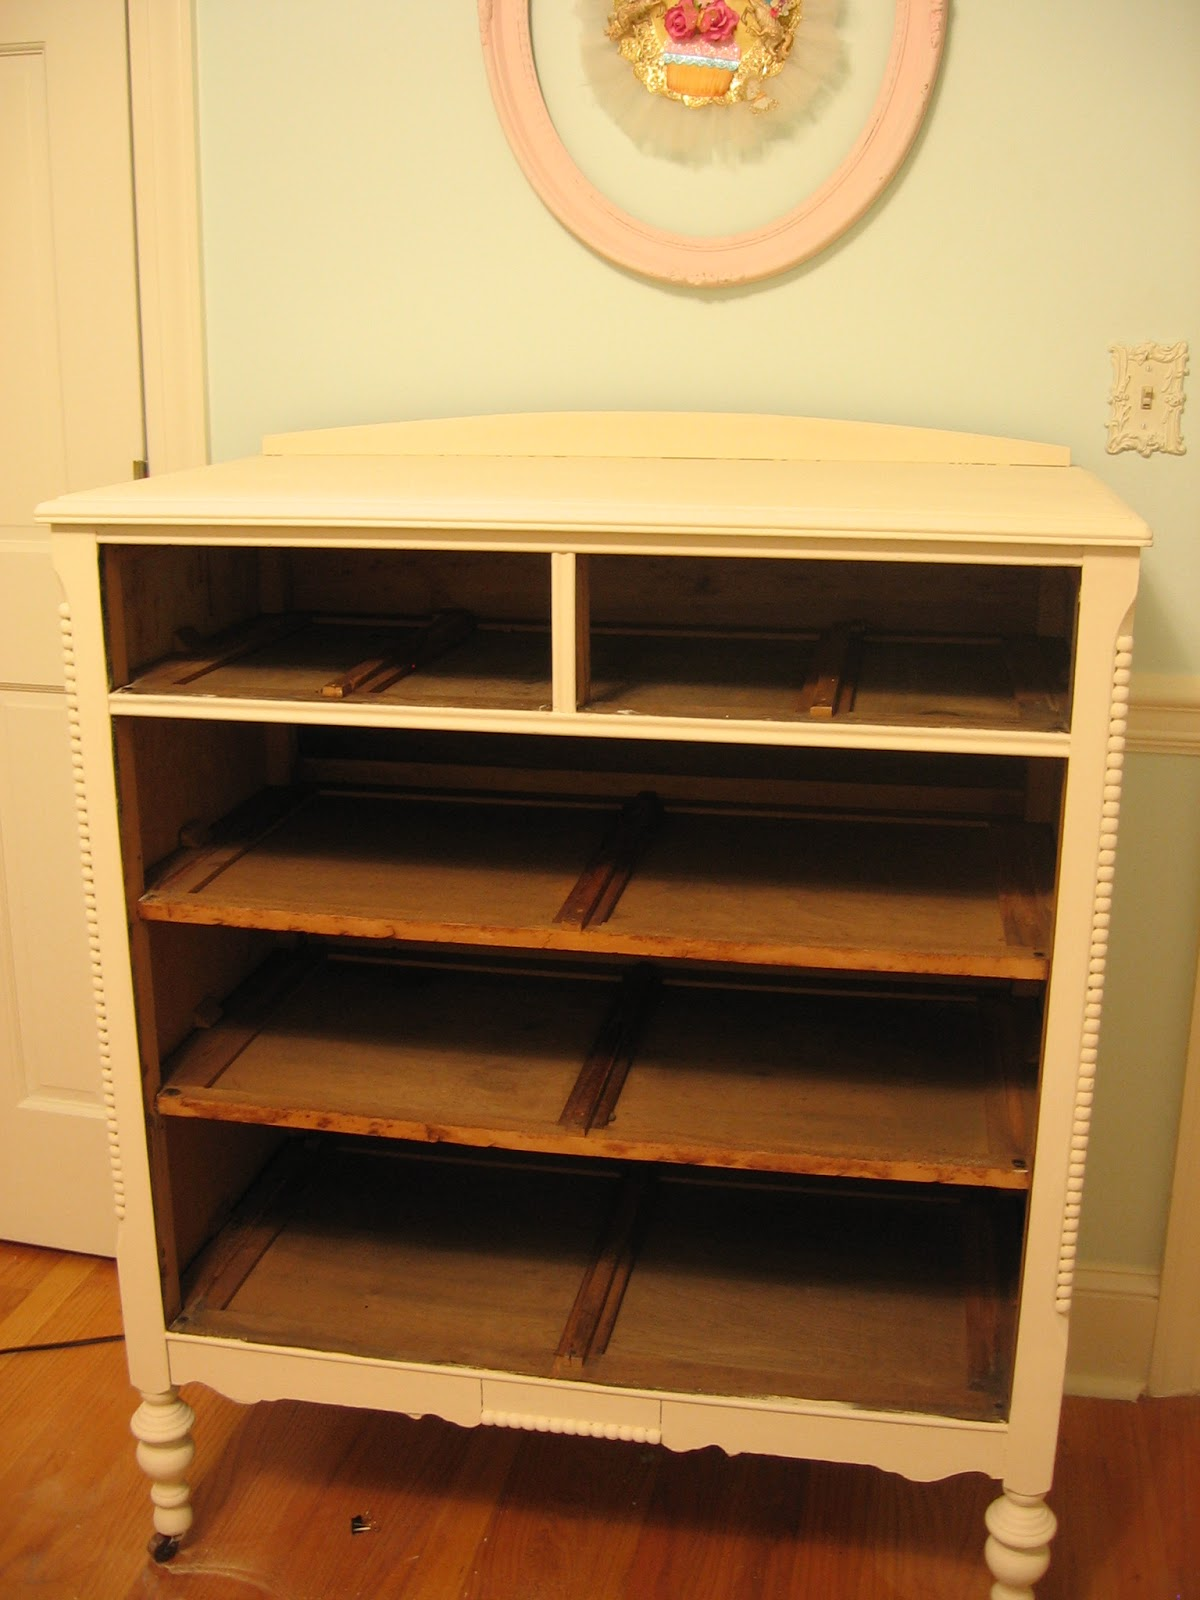 Best Woodworking Plans Book This End Up Furniture Plans Wooden Plans